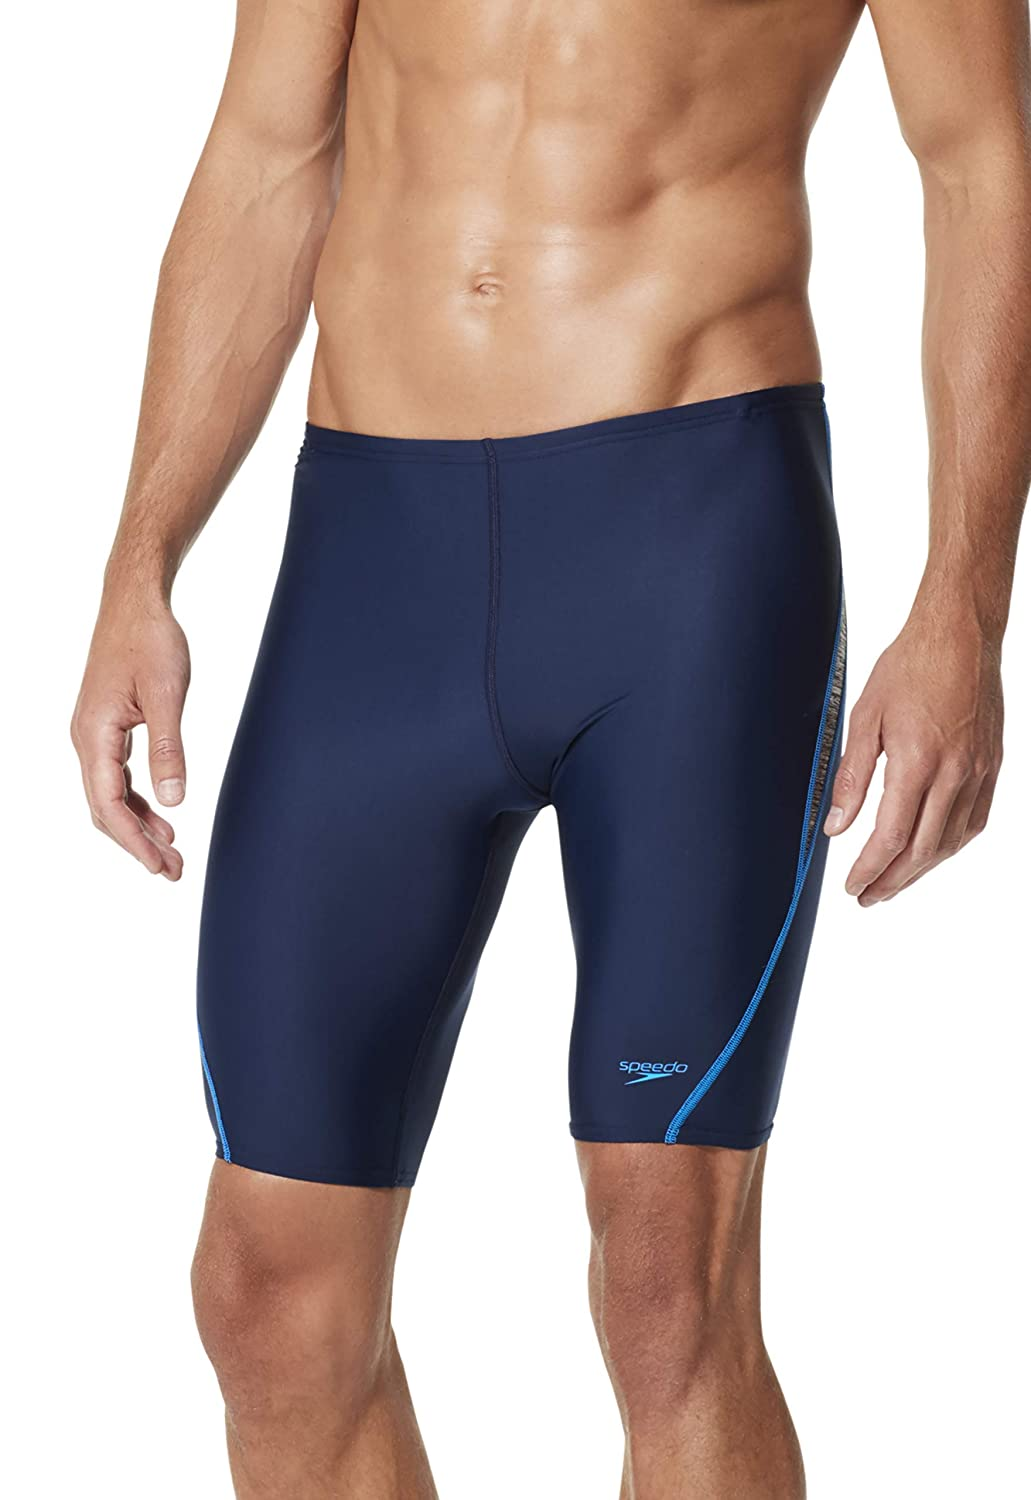 Speedo Relaunch Splice Speedo Swimwear 8051543-P